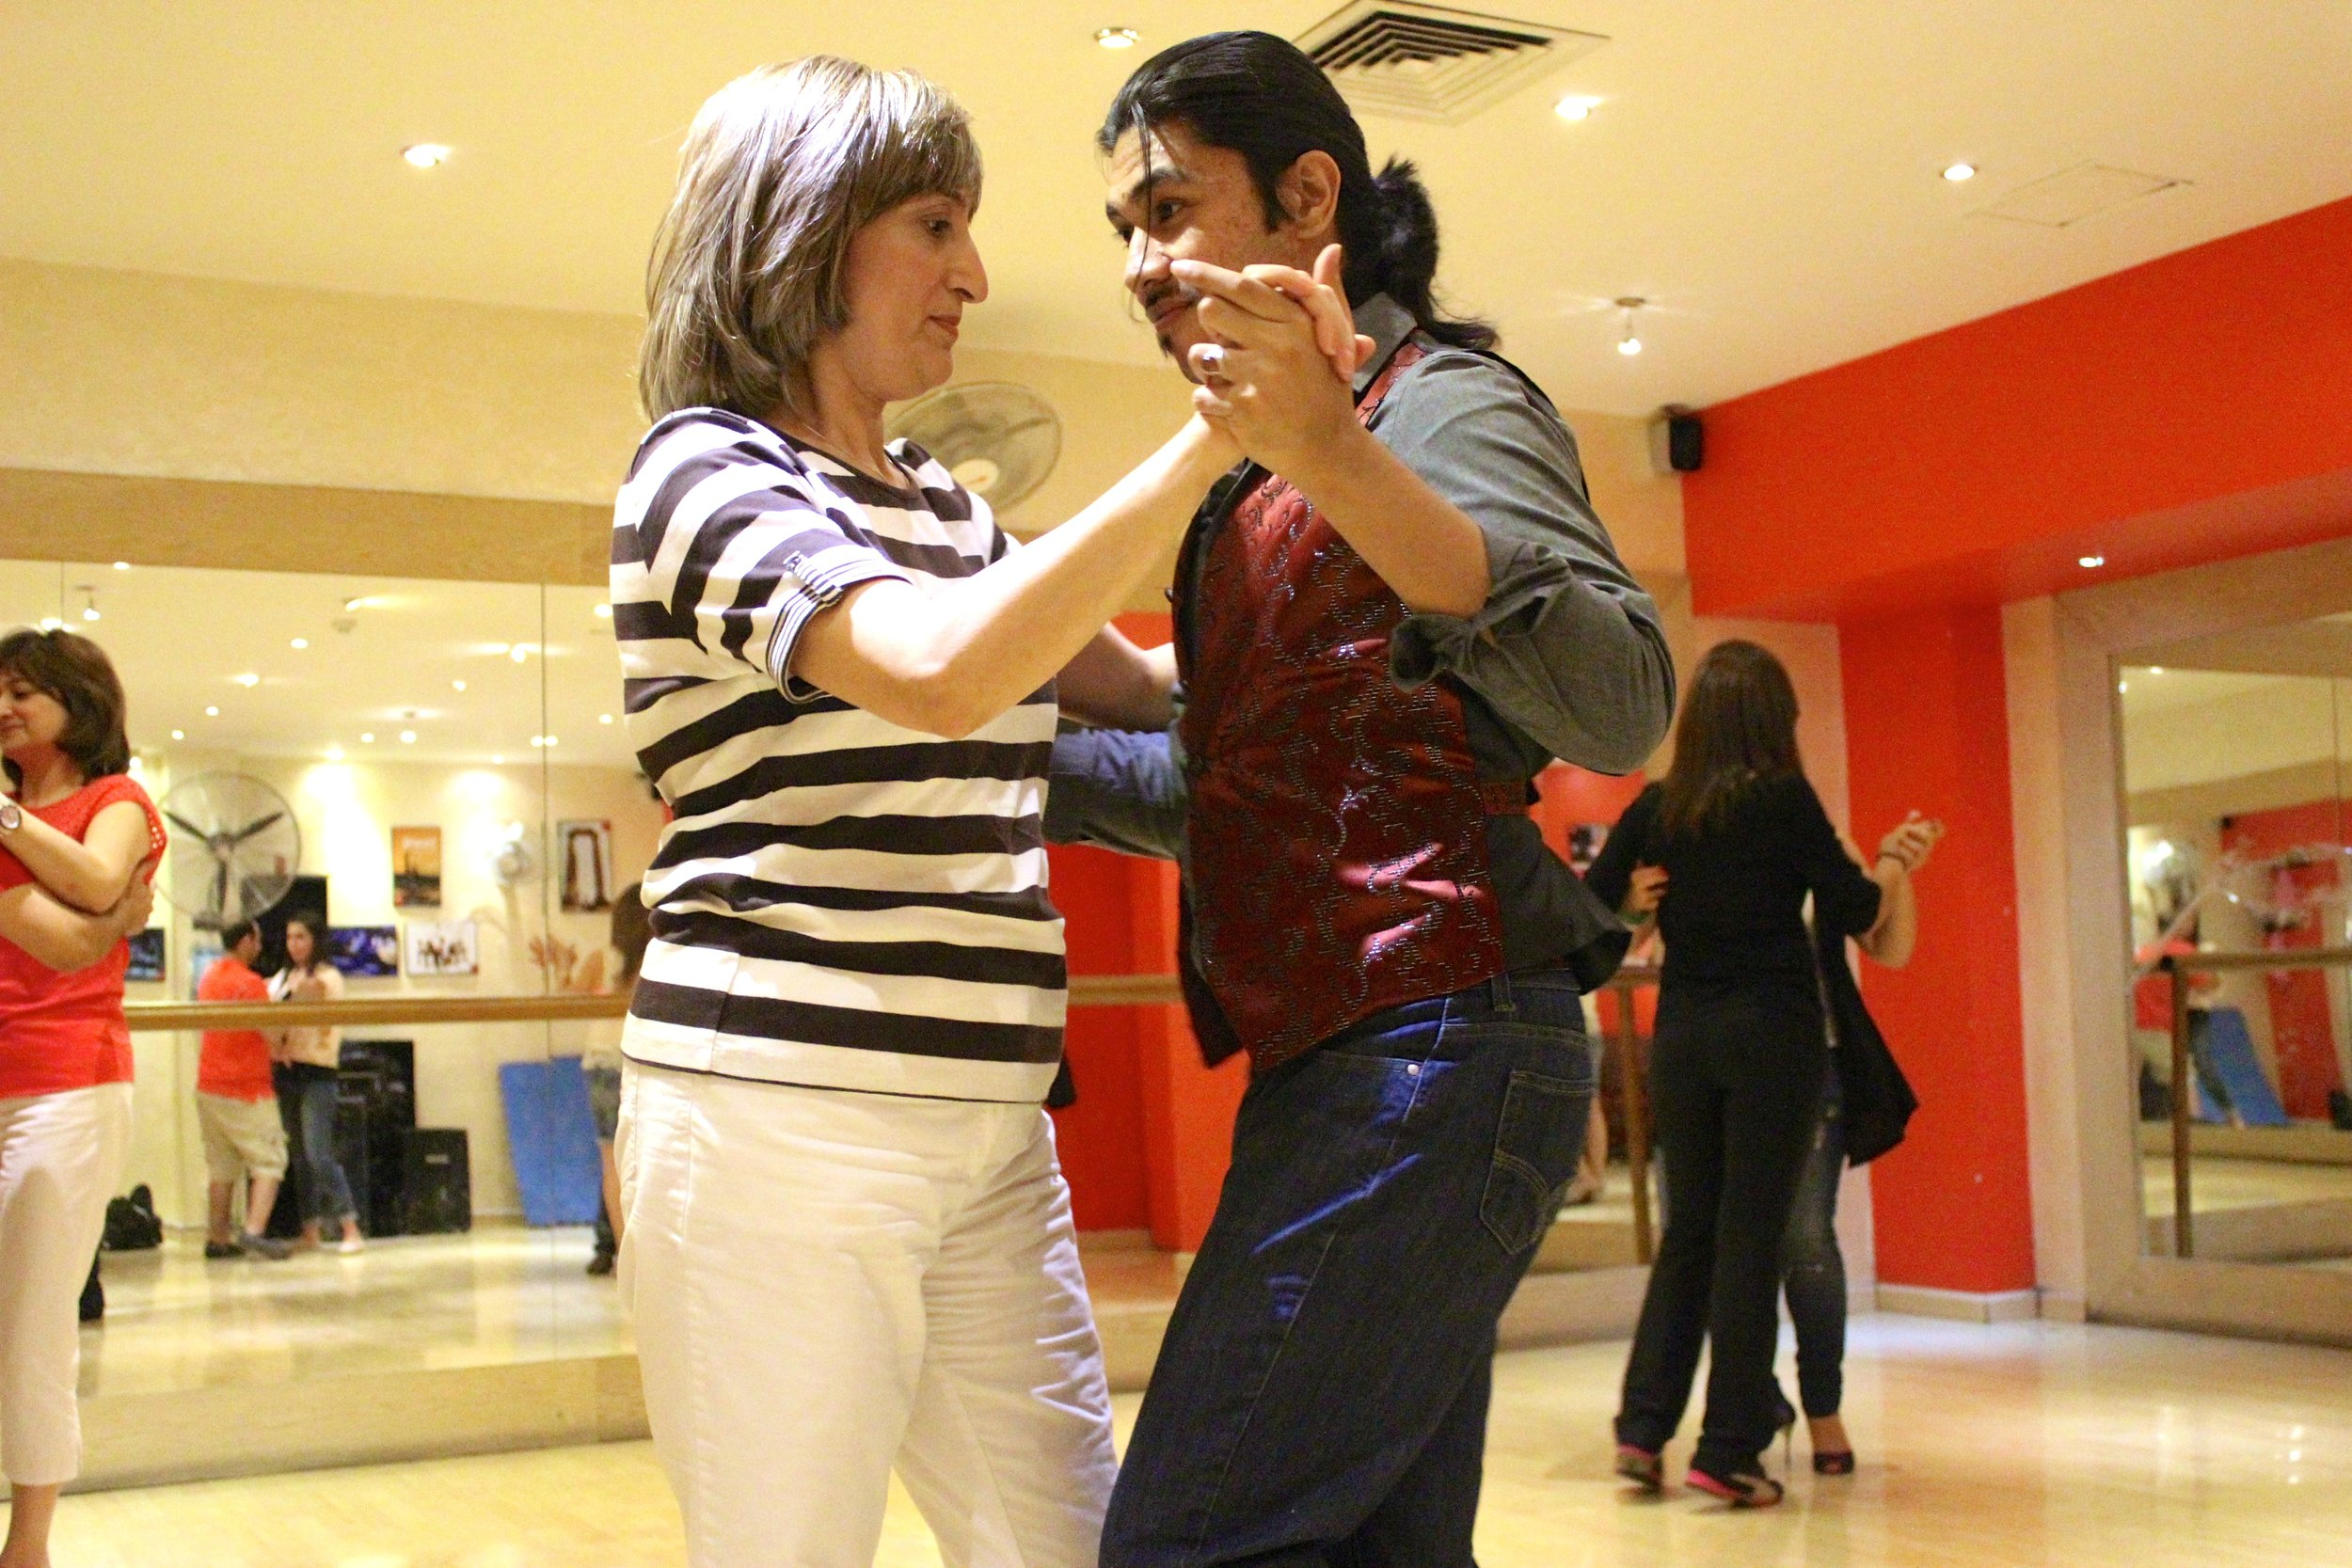 Latin, oriental dance gain popularity in Amman